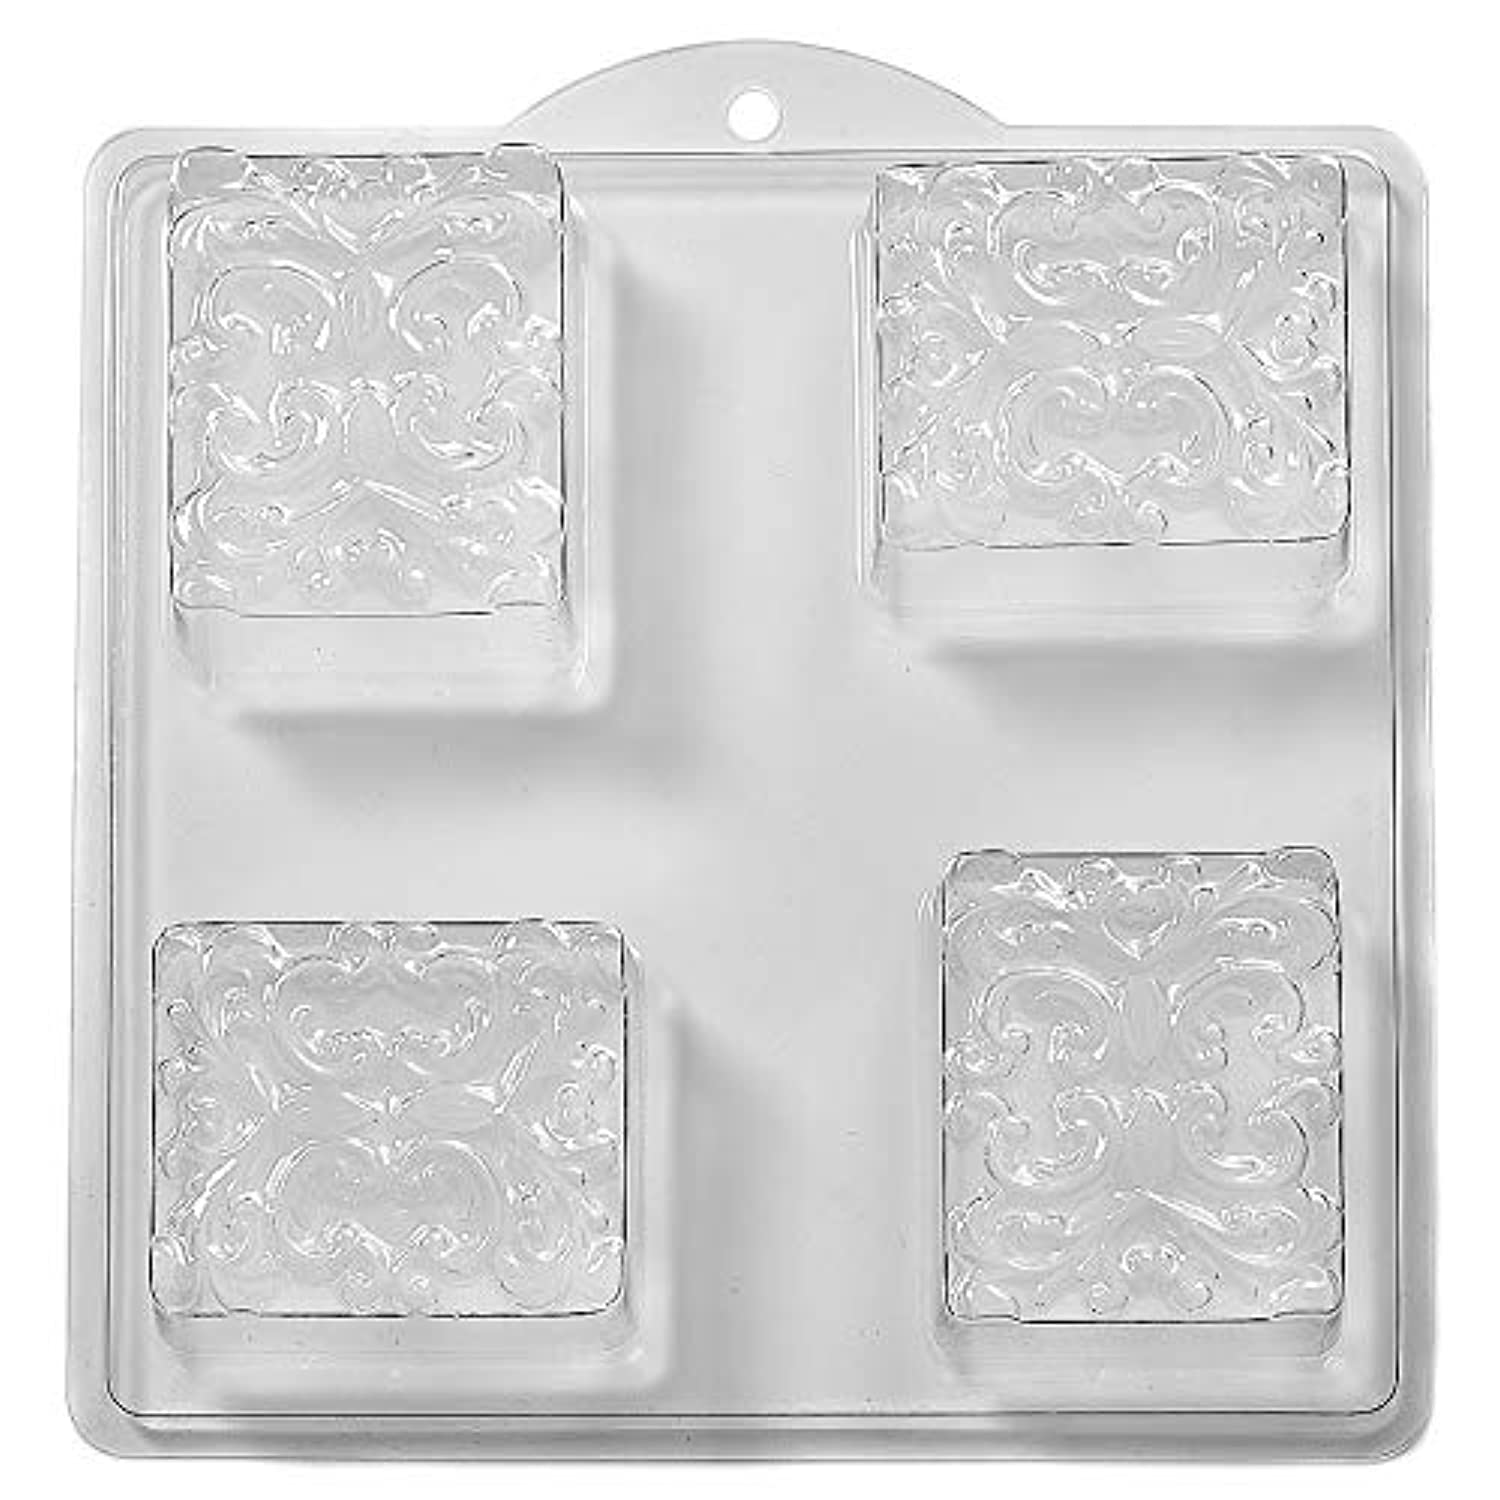 4 Cavity Floral Pattern In Square Soap/Bath Bomb Mould Mold M37 x 5